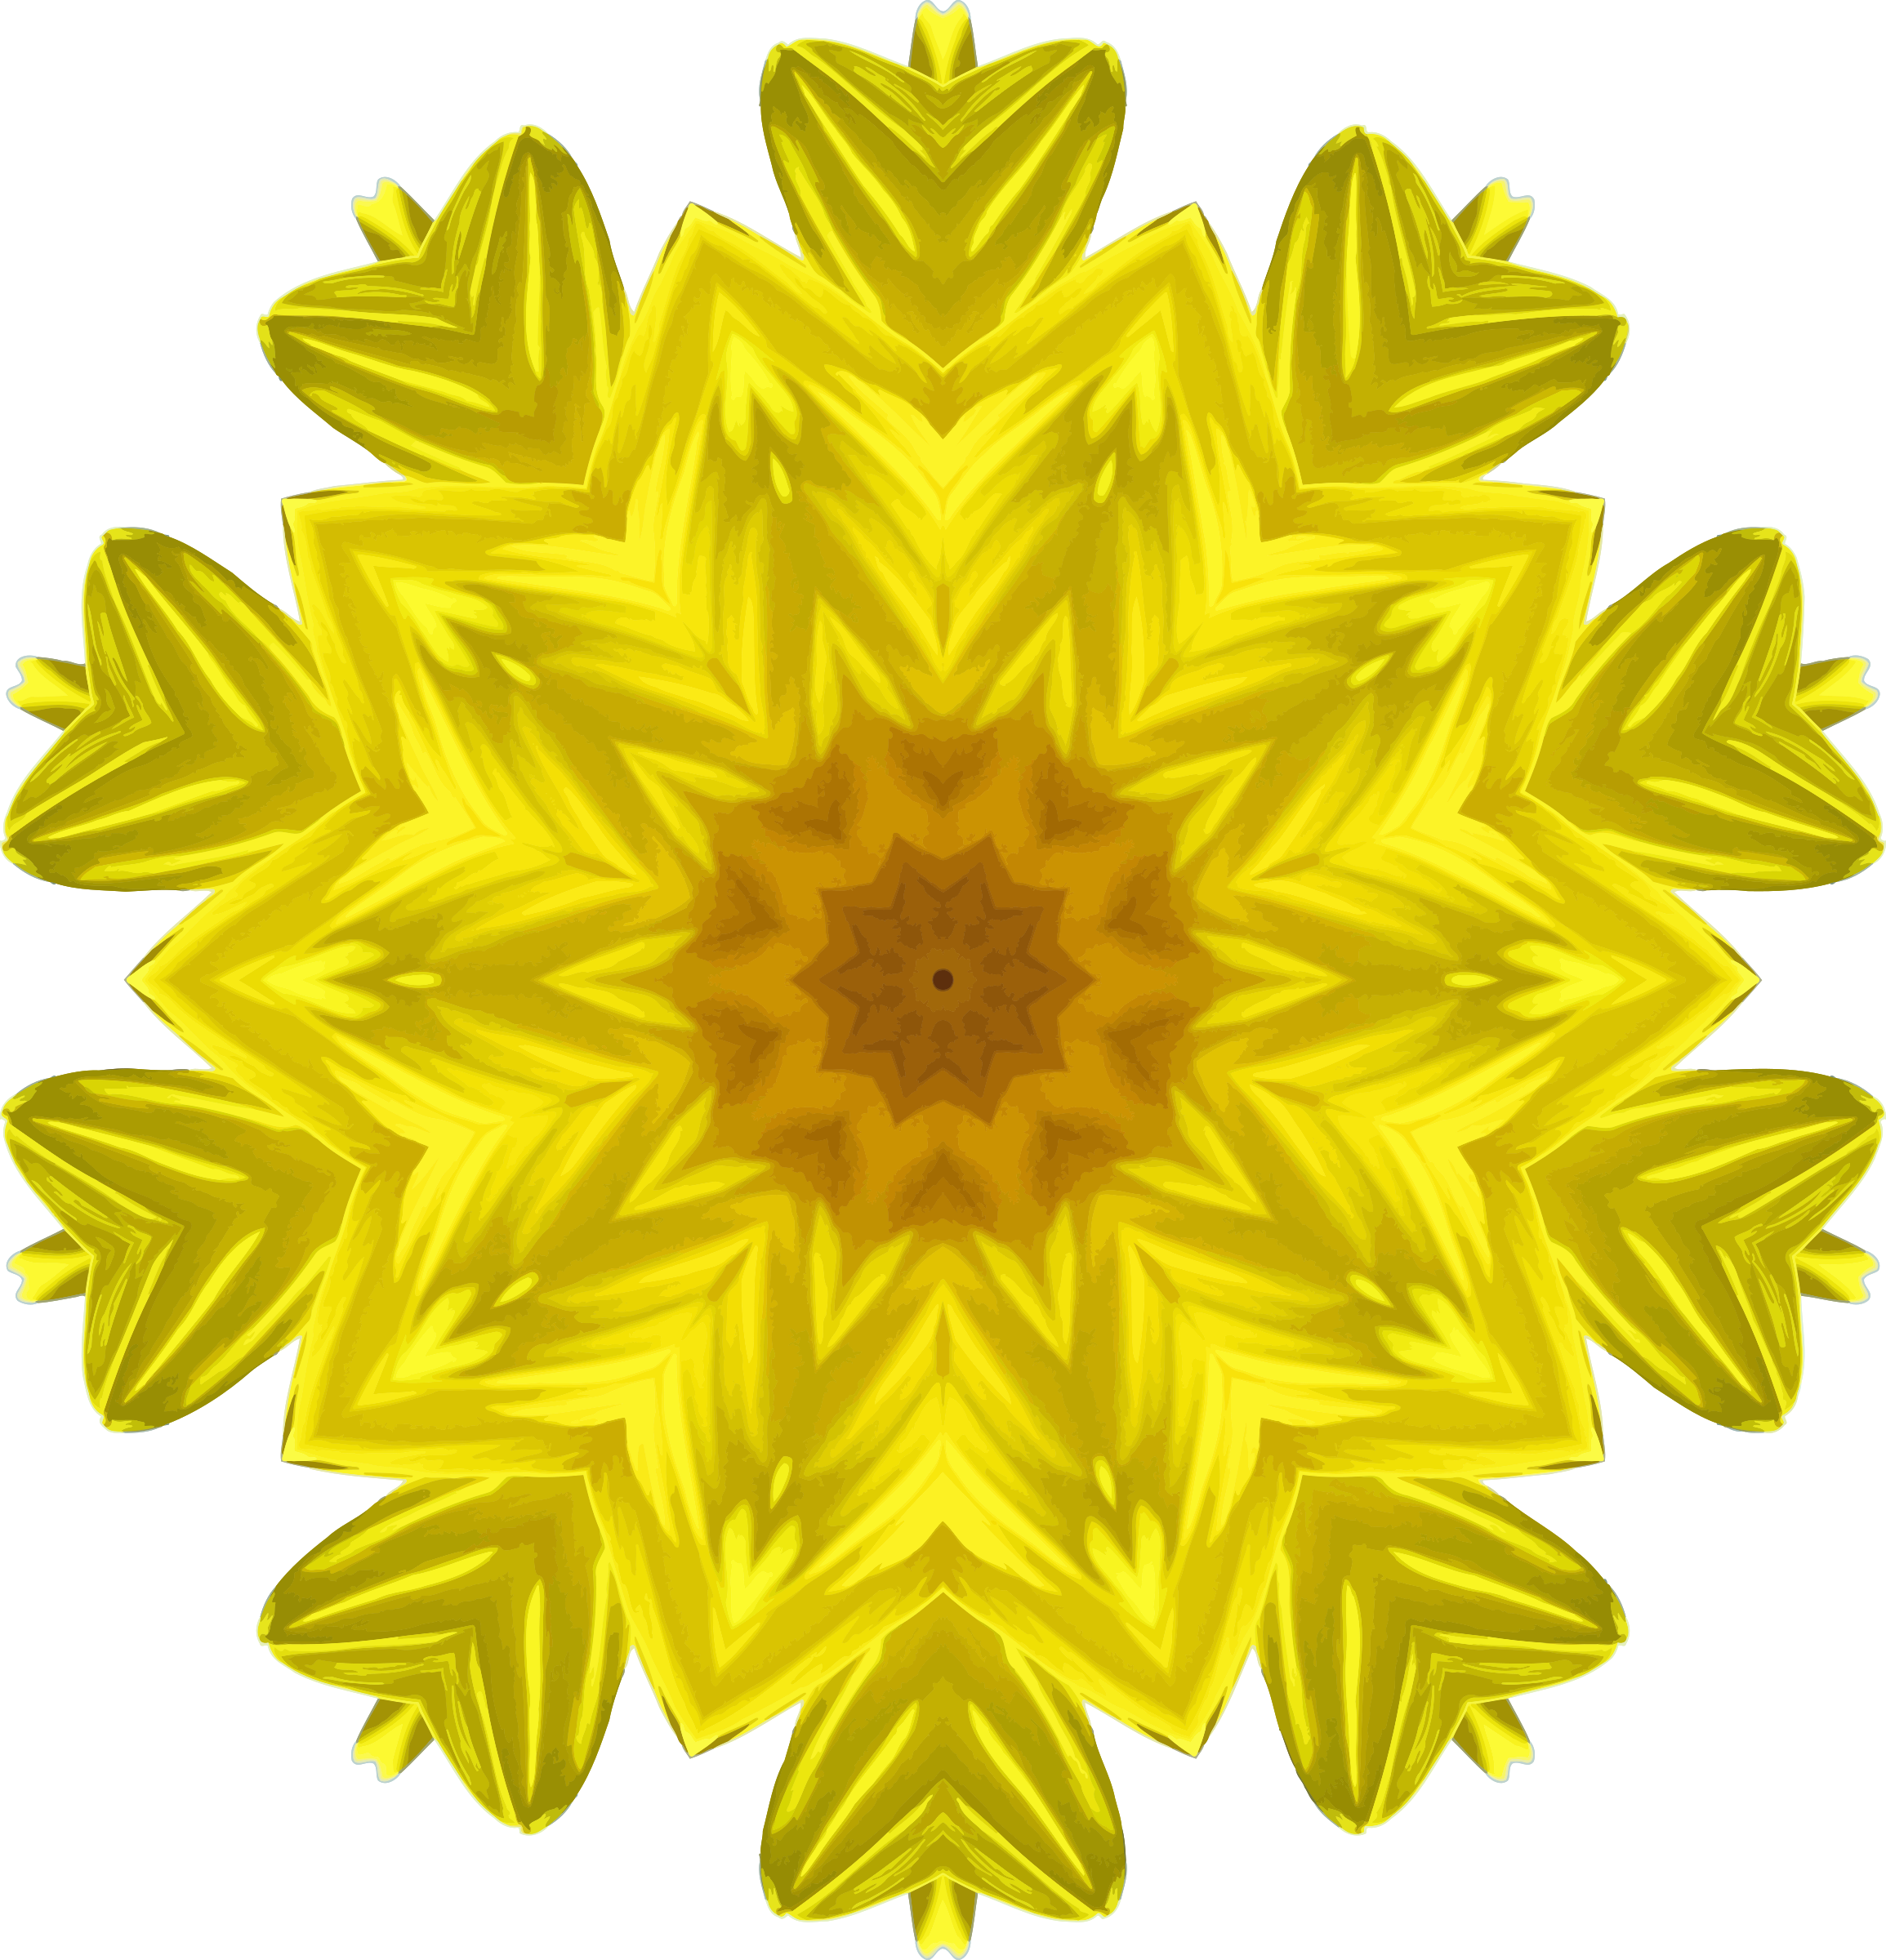 Sunflower kaleidoscope 1 by Firkin